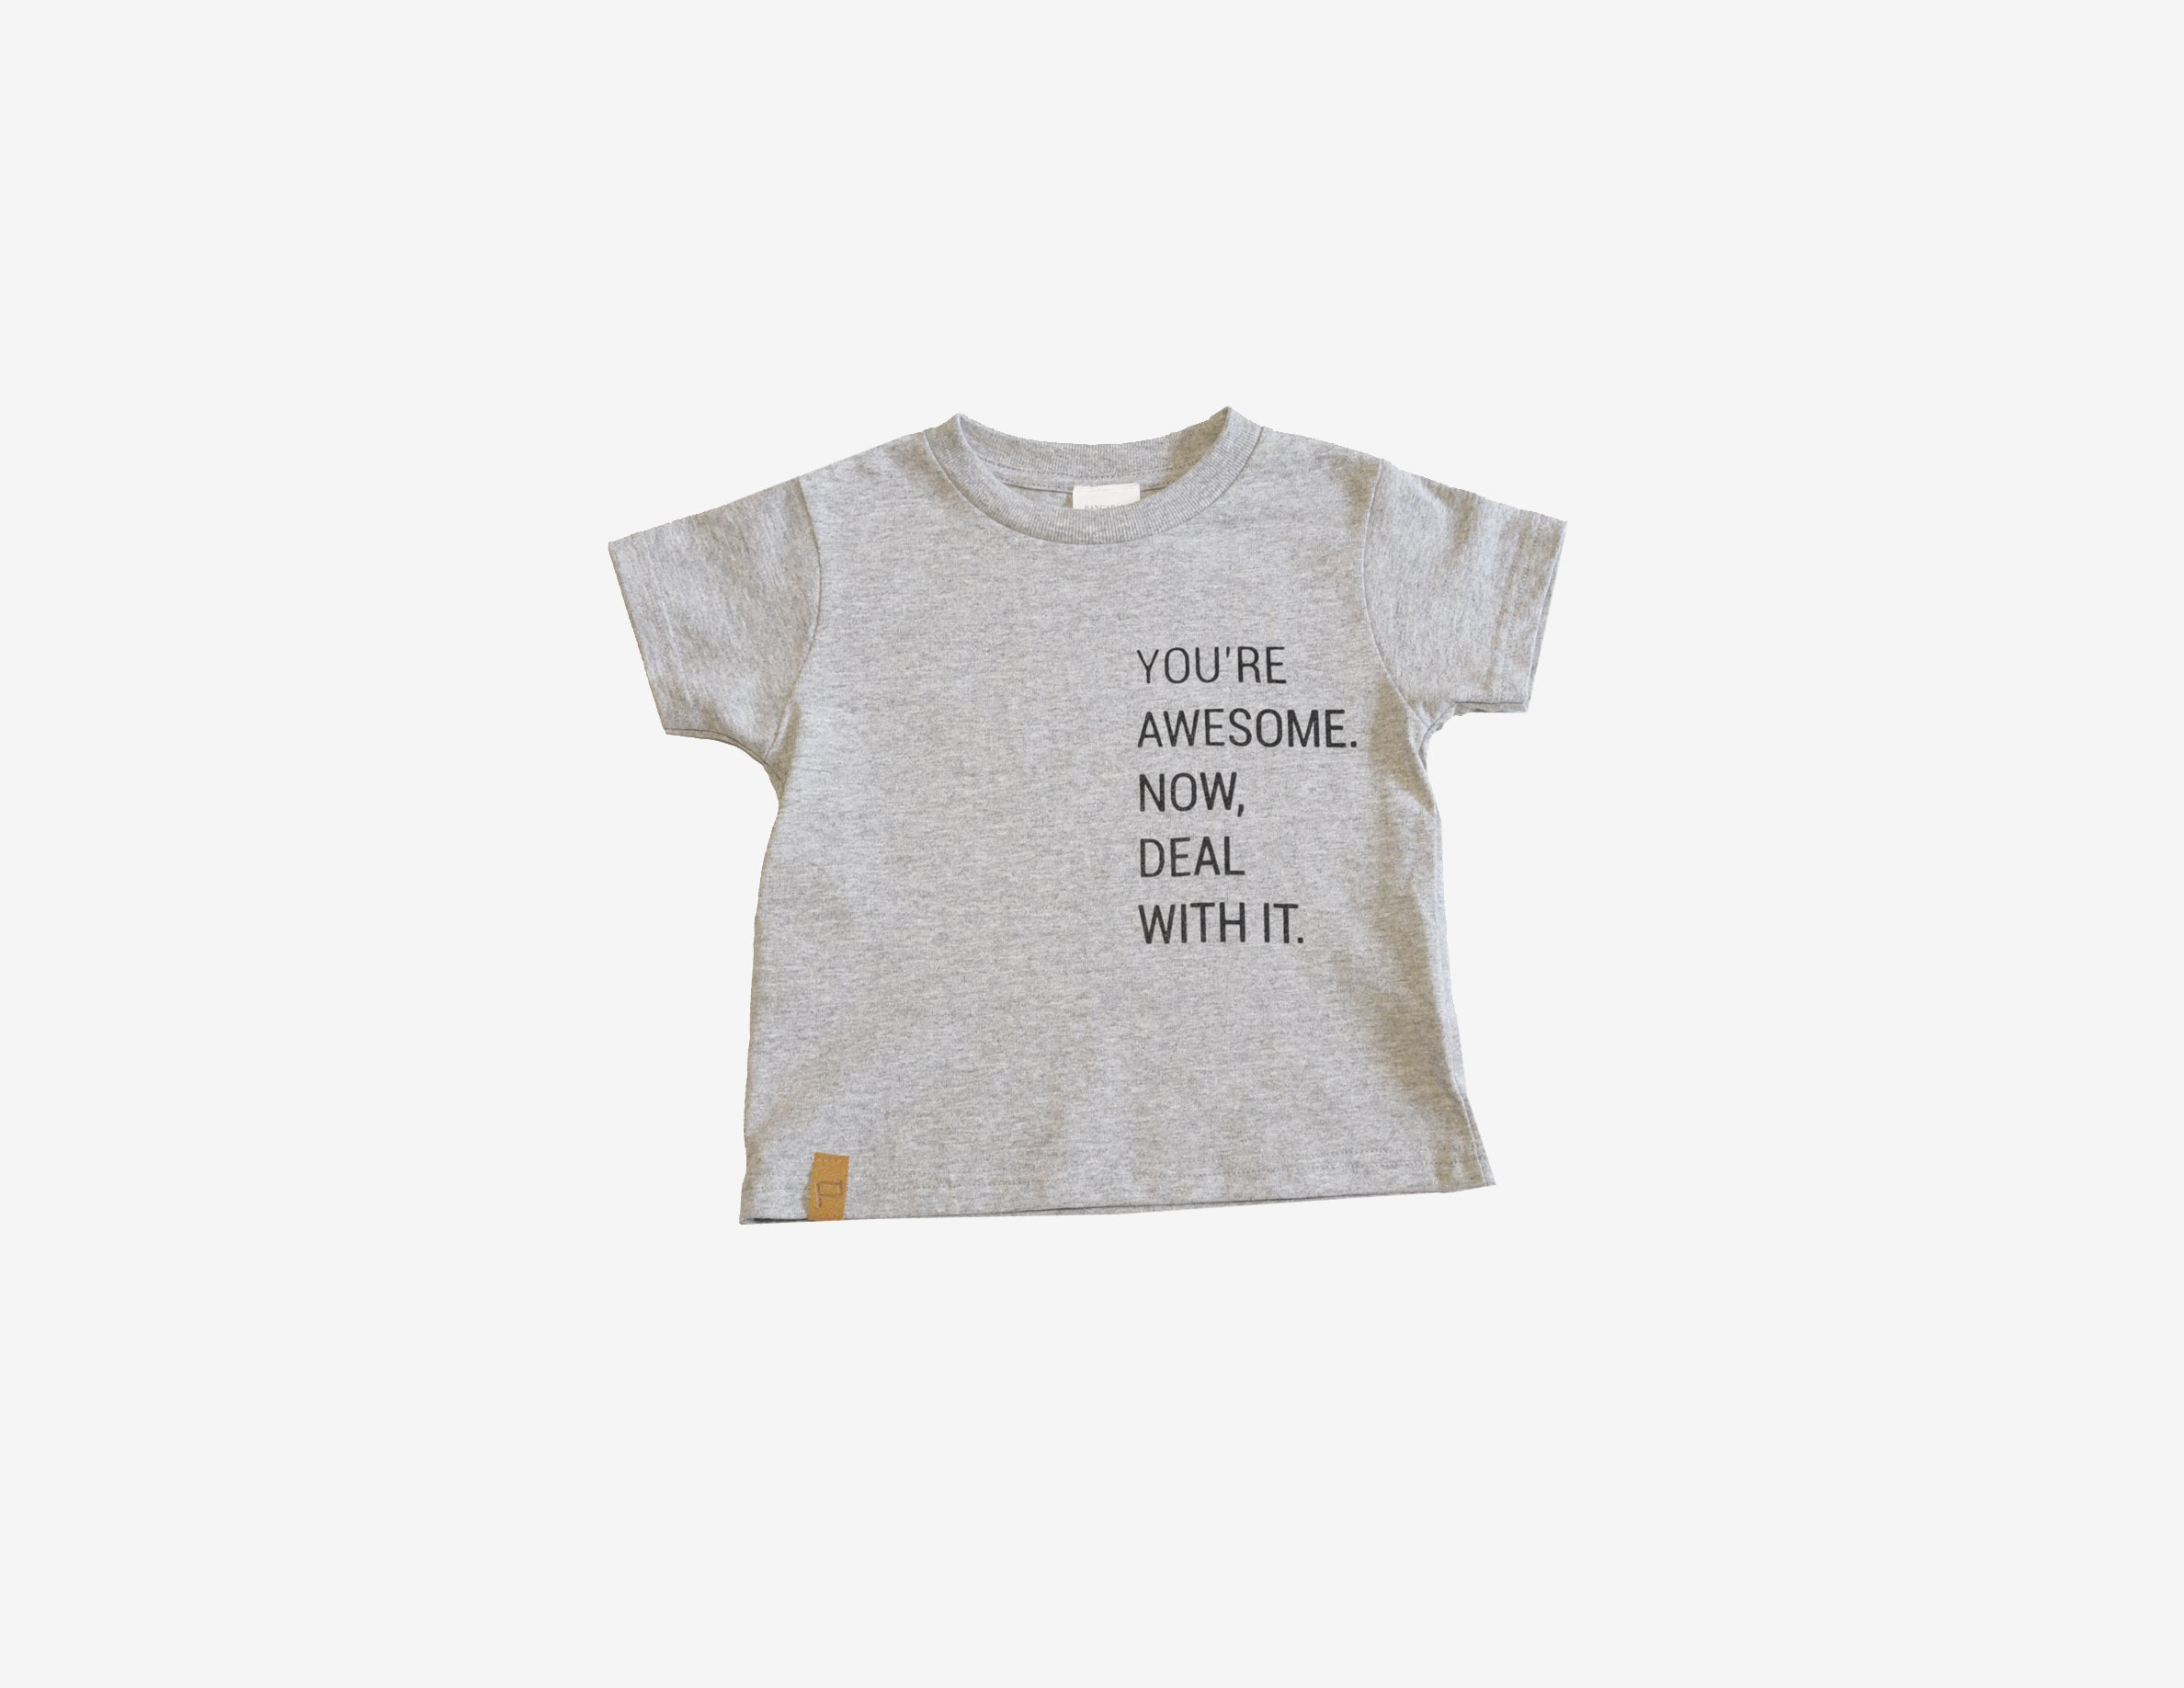 YOU'RE AWESOME. NOW DEAL WITH IT. // T-Shirt Gris Enfant // Heather Toddler Tee